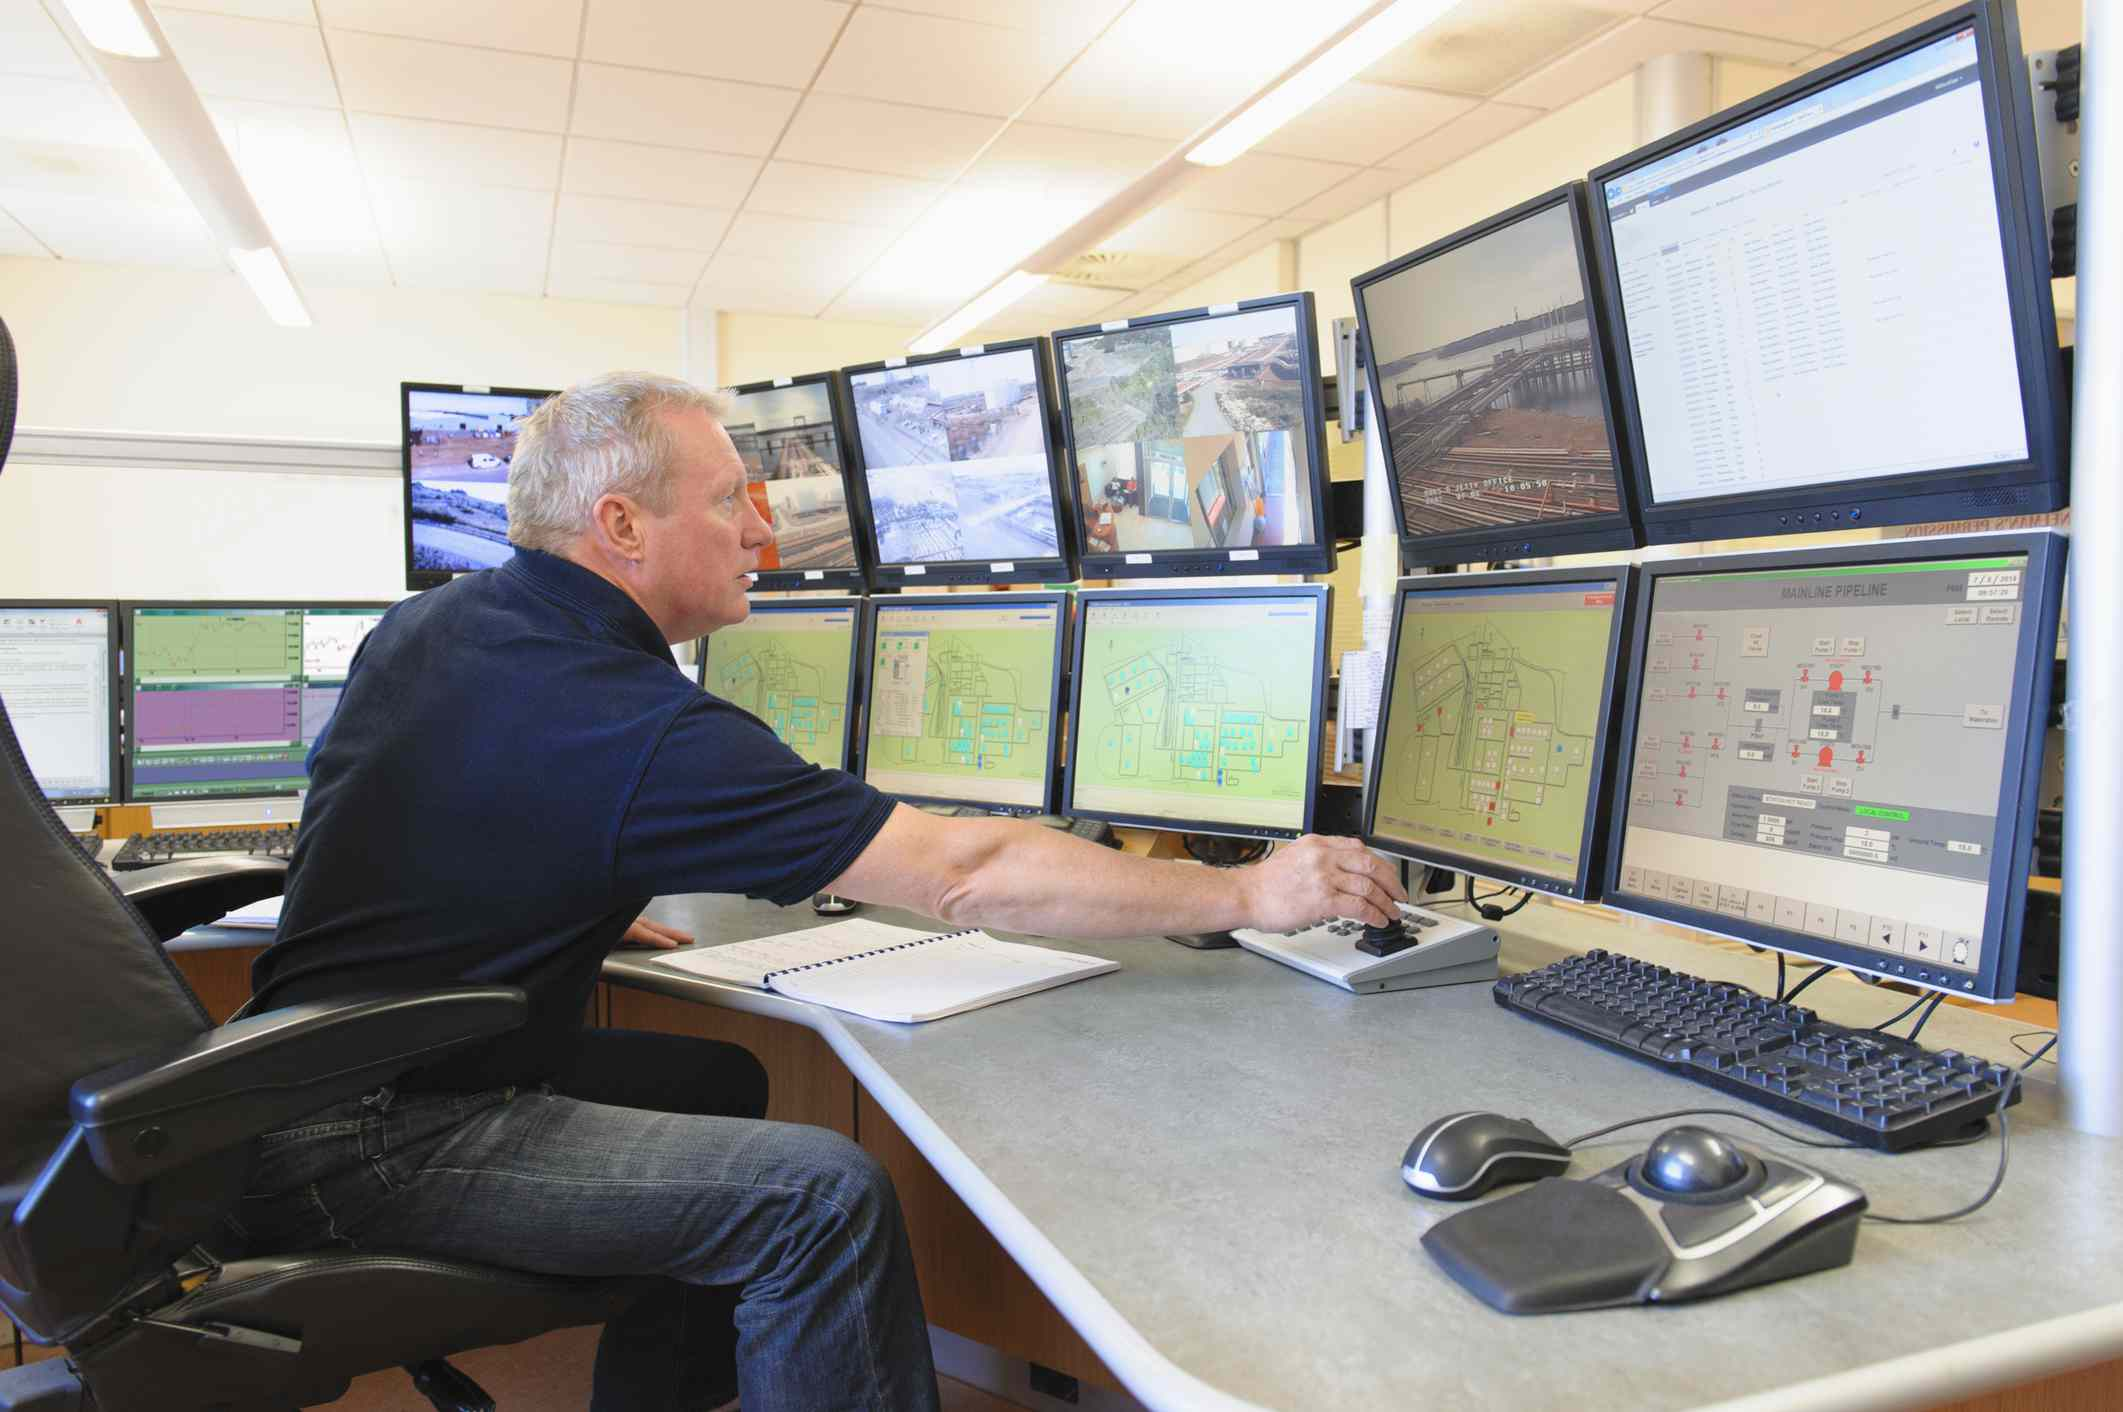 Security engineer reviewing many computer camera